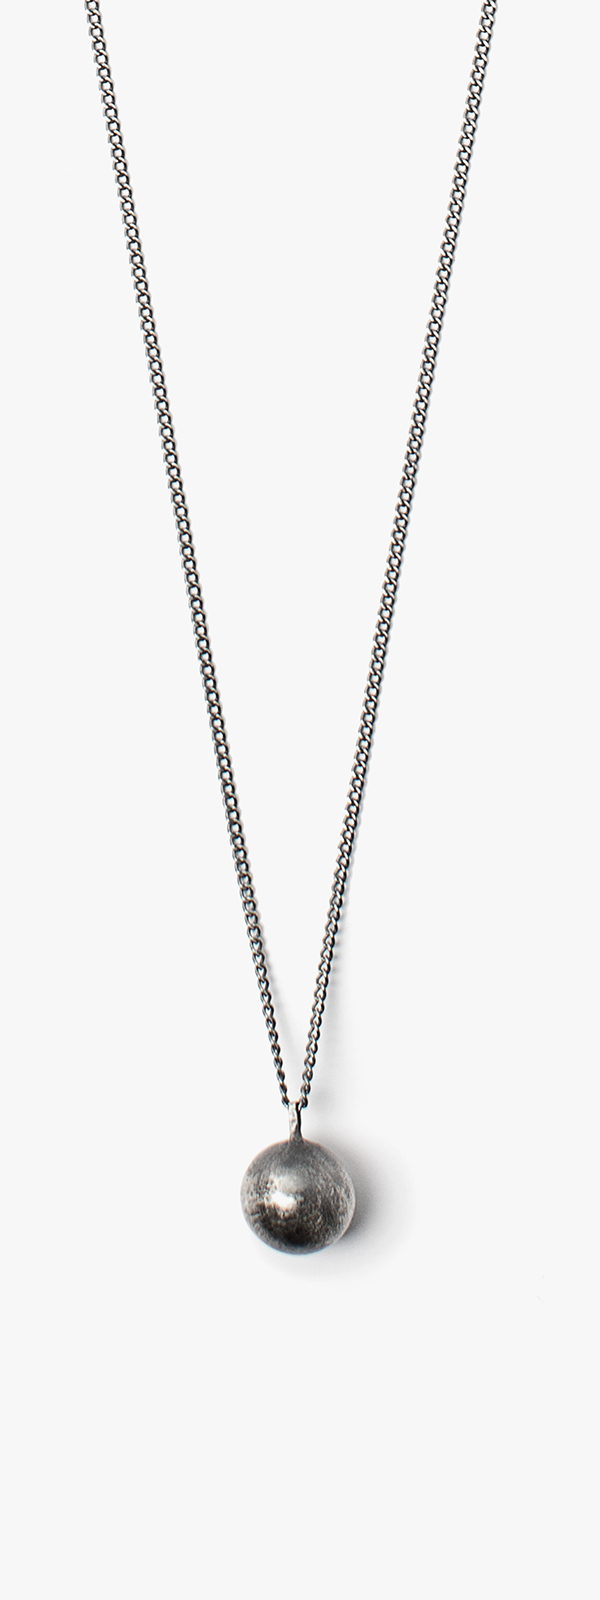 Image of Wrecking Ball Necklace